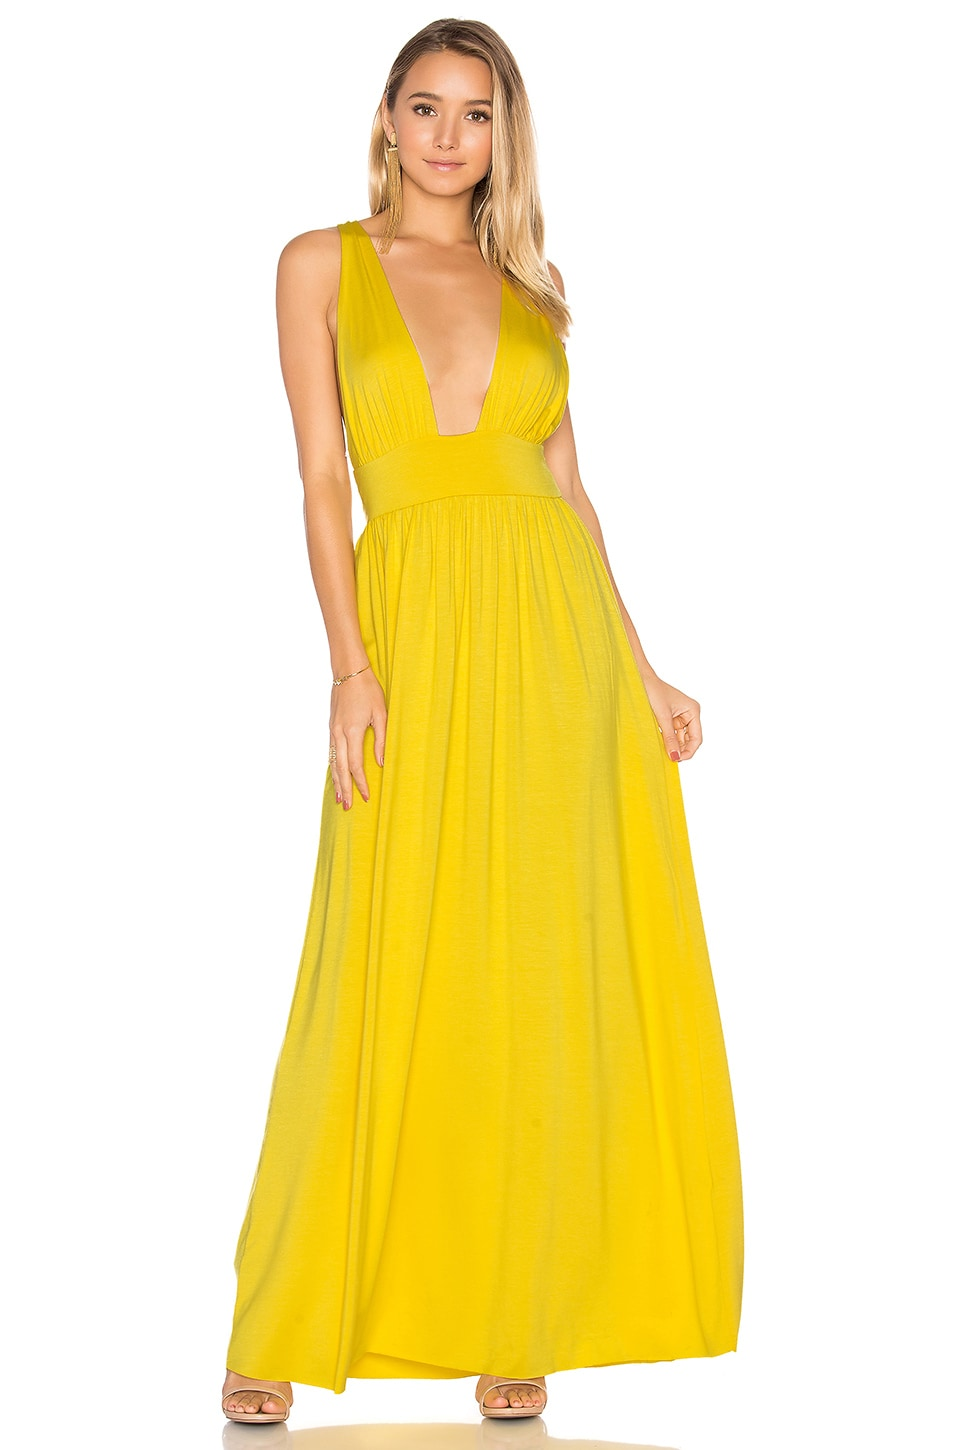 Rachel Pally Dario Dress in Daffodil